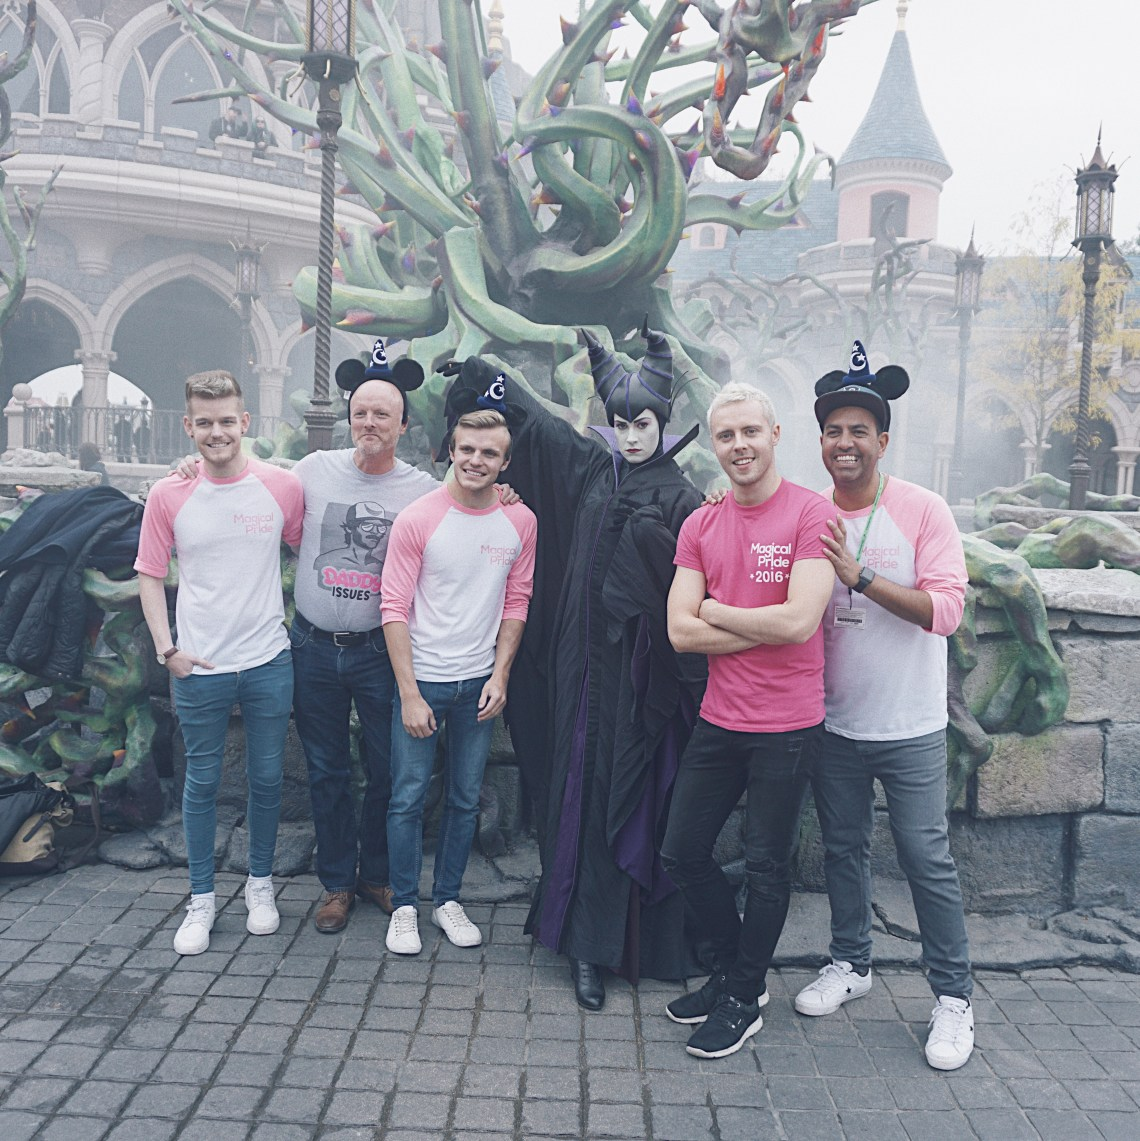 Magical Pride team with Maleficent at Disneyland® Paris.